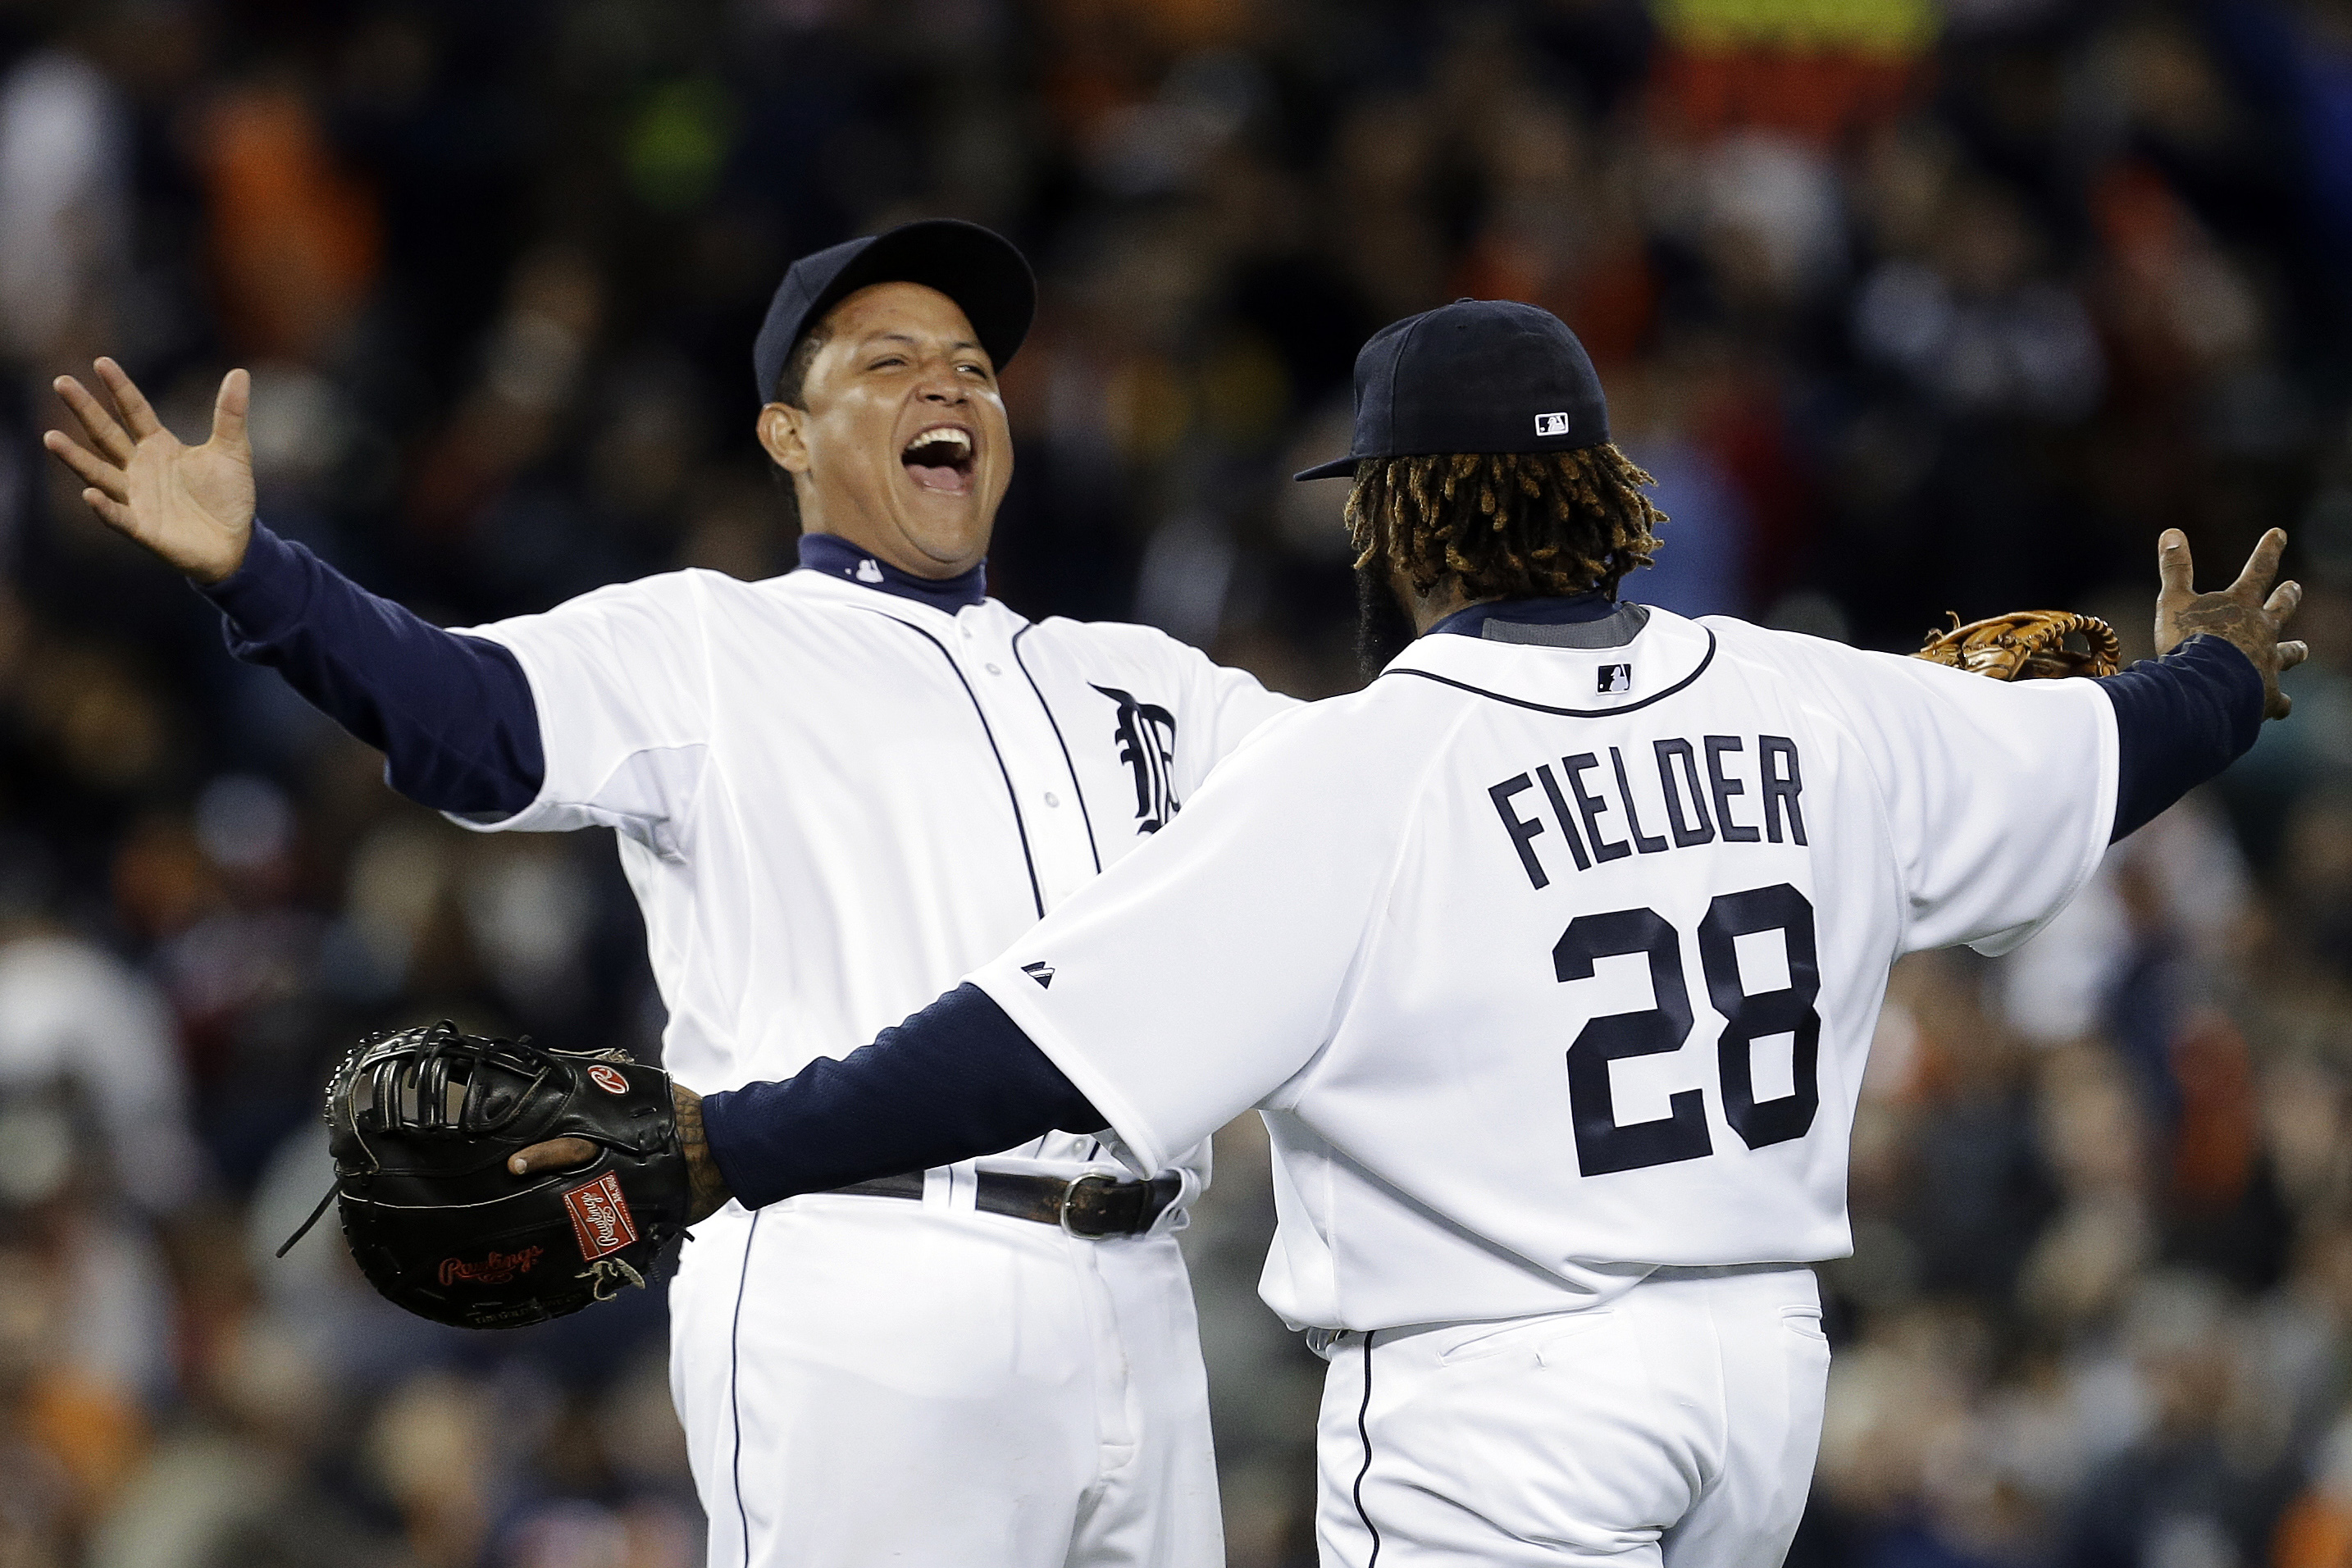 Tigers beat Royals 5-4 to keep at least a share of 1st ... Miguel Cabrera Fantasy Outlook